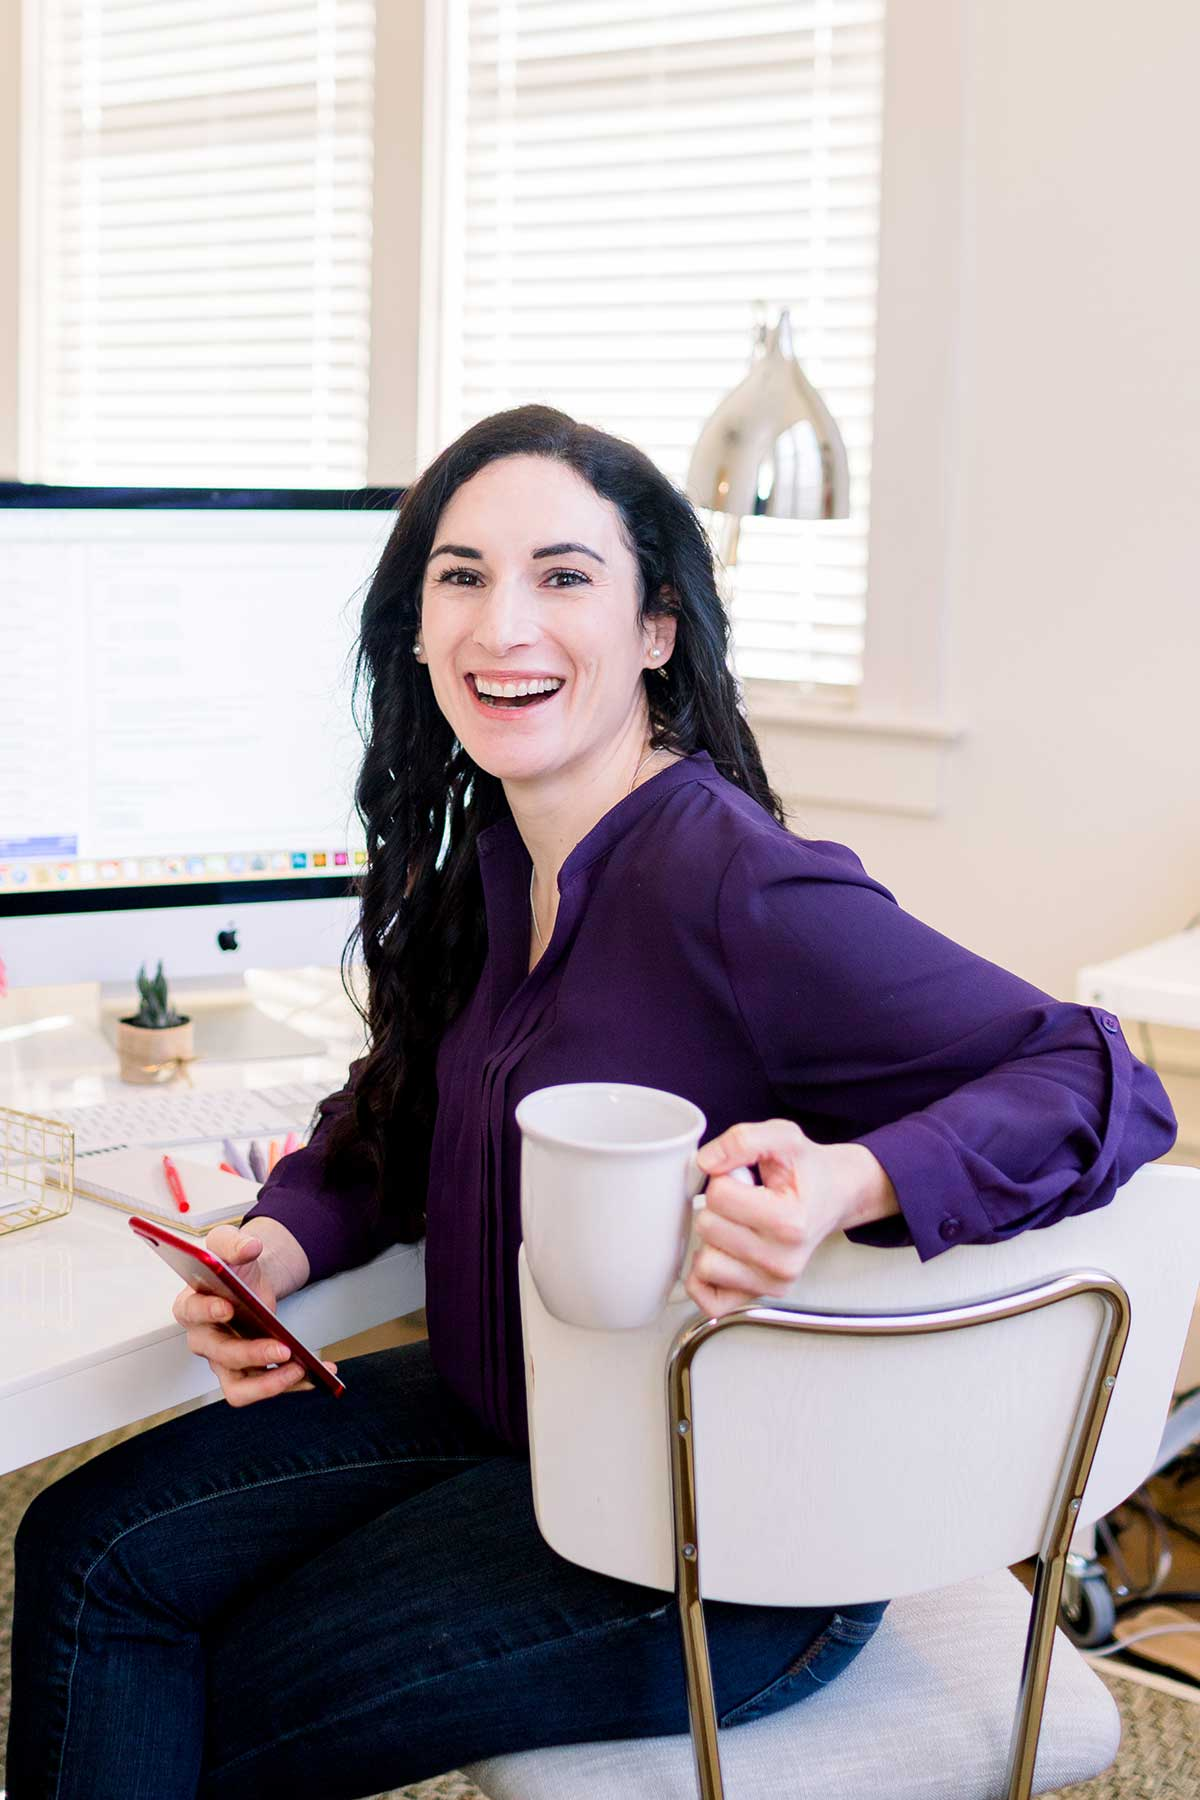 woman sitting at desk with phone and coffee cup in hand